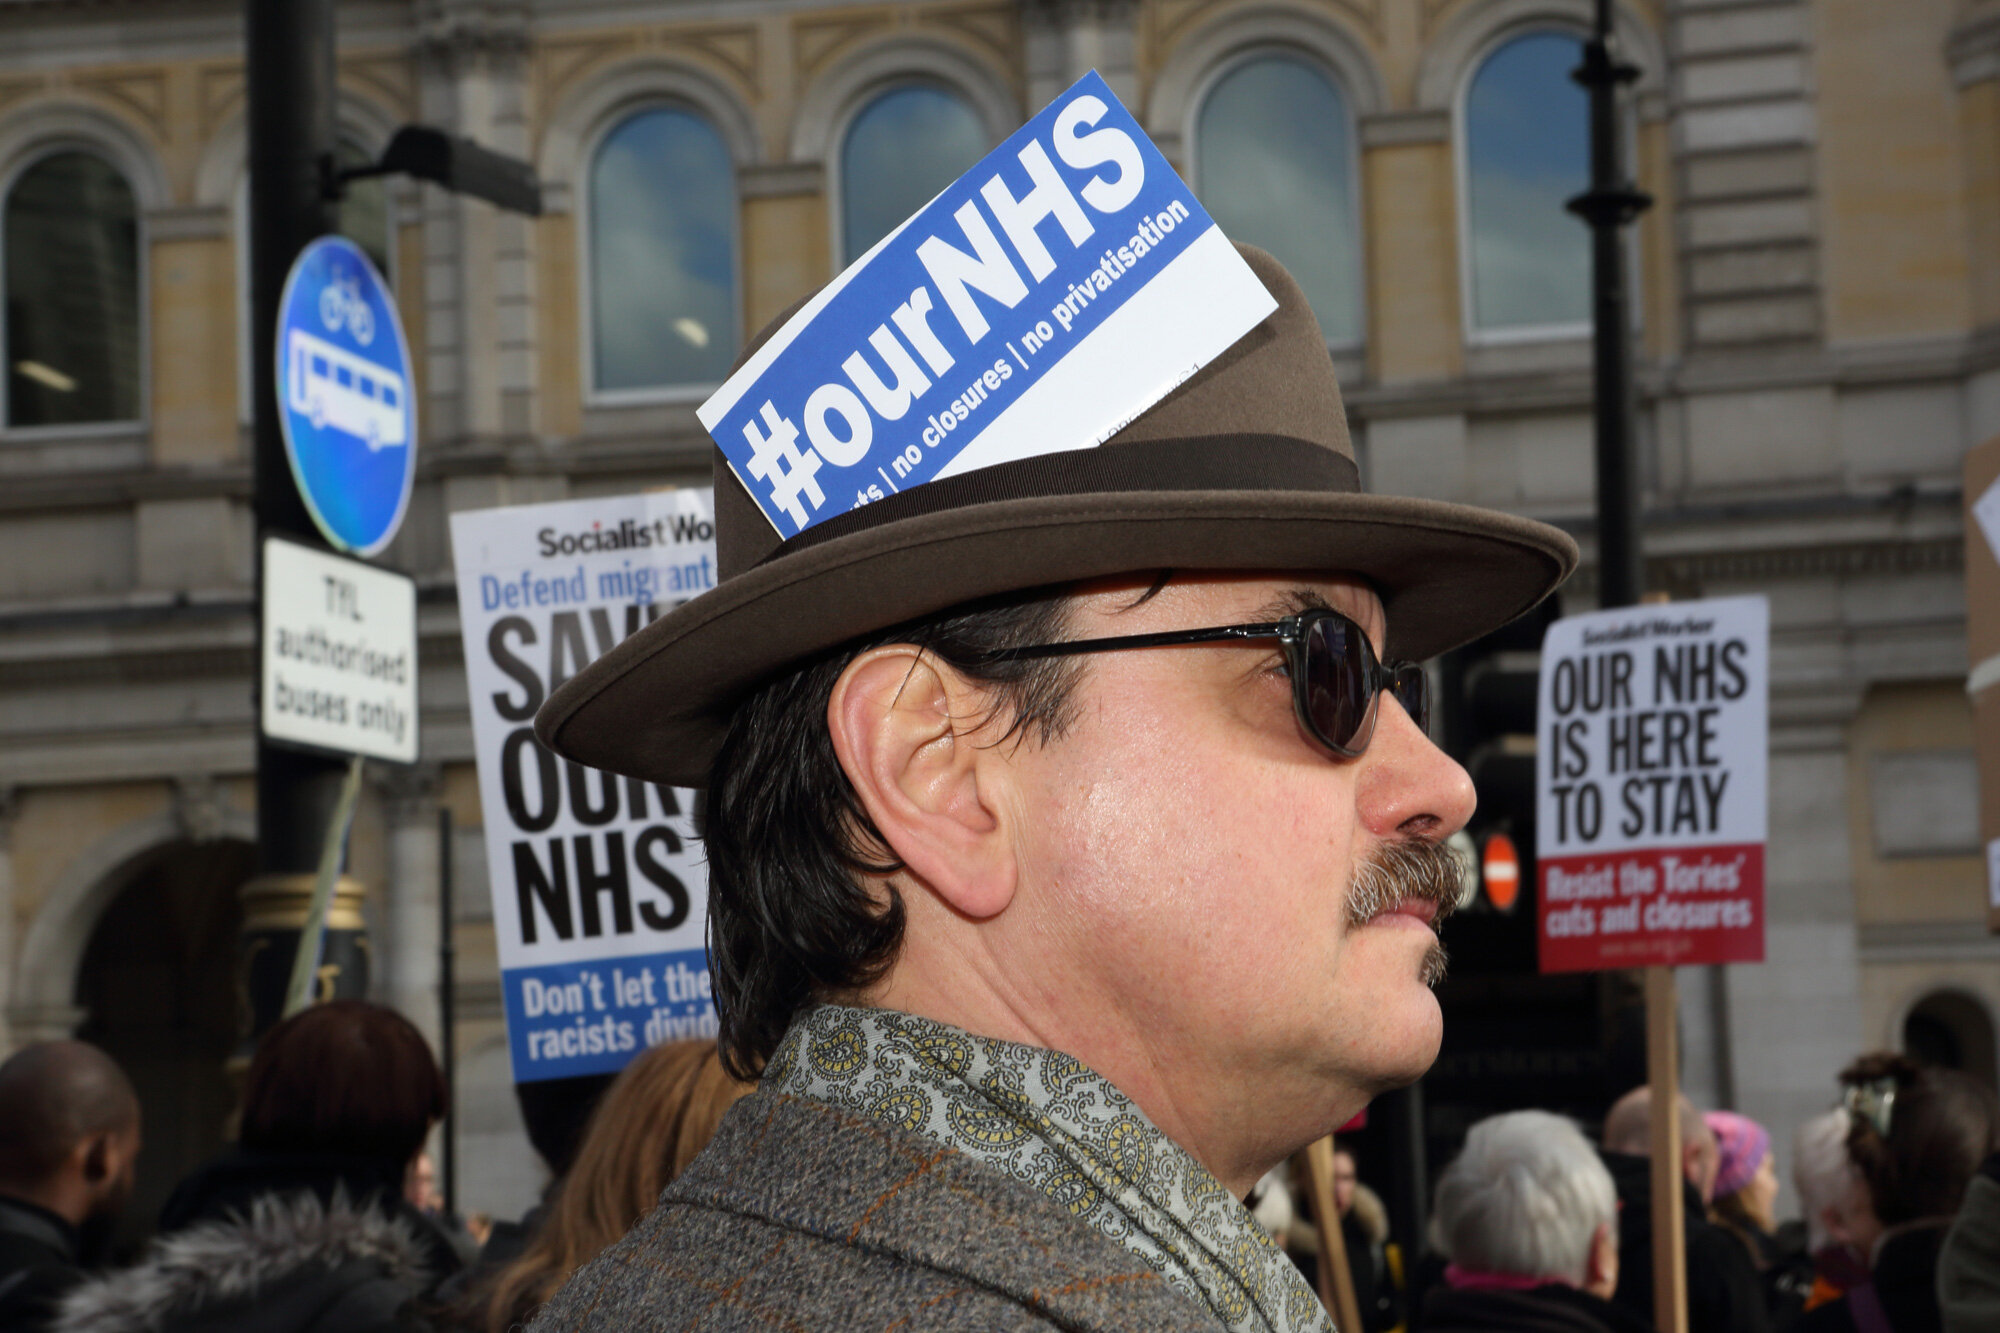 Our NHS March, London 2017